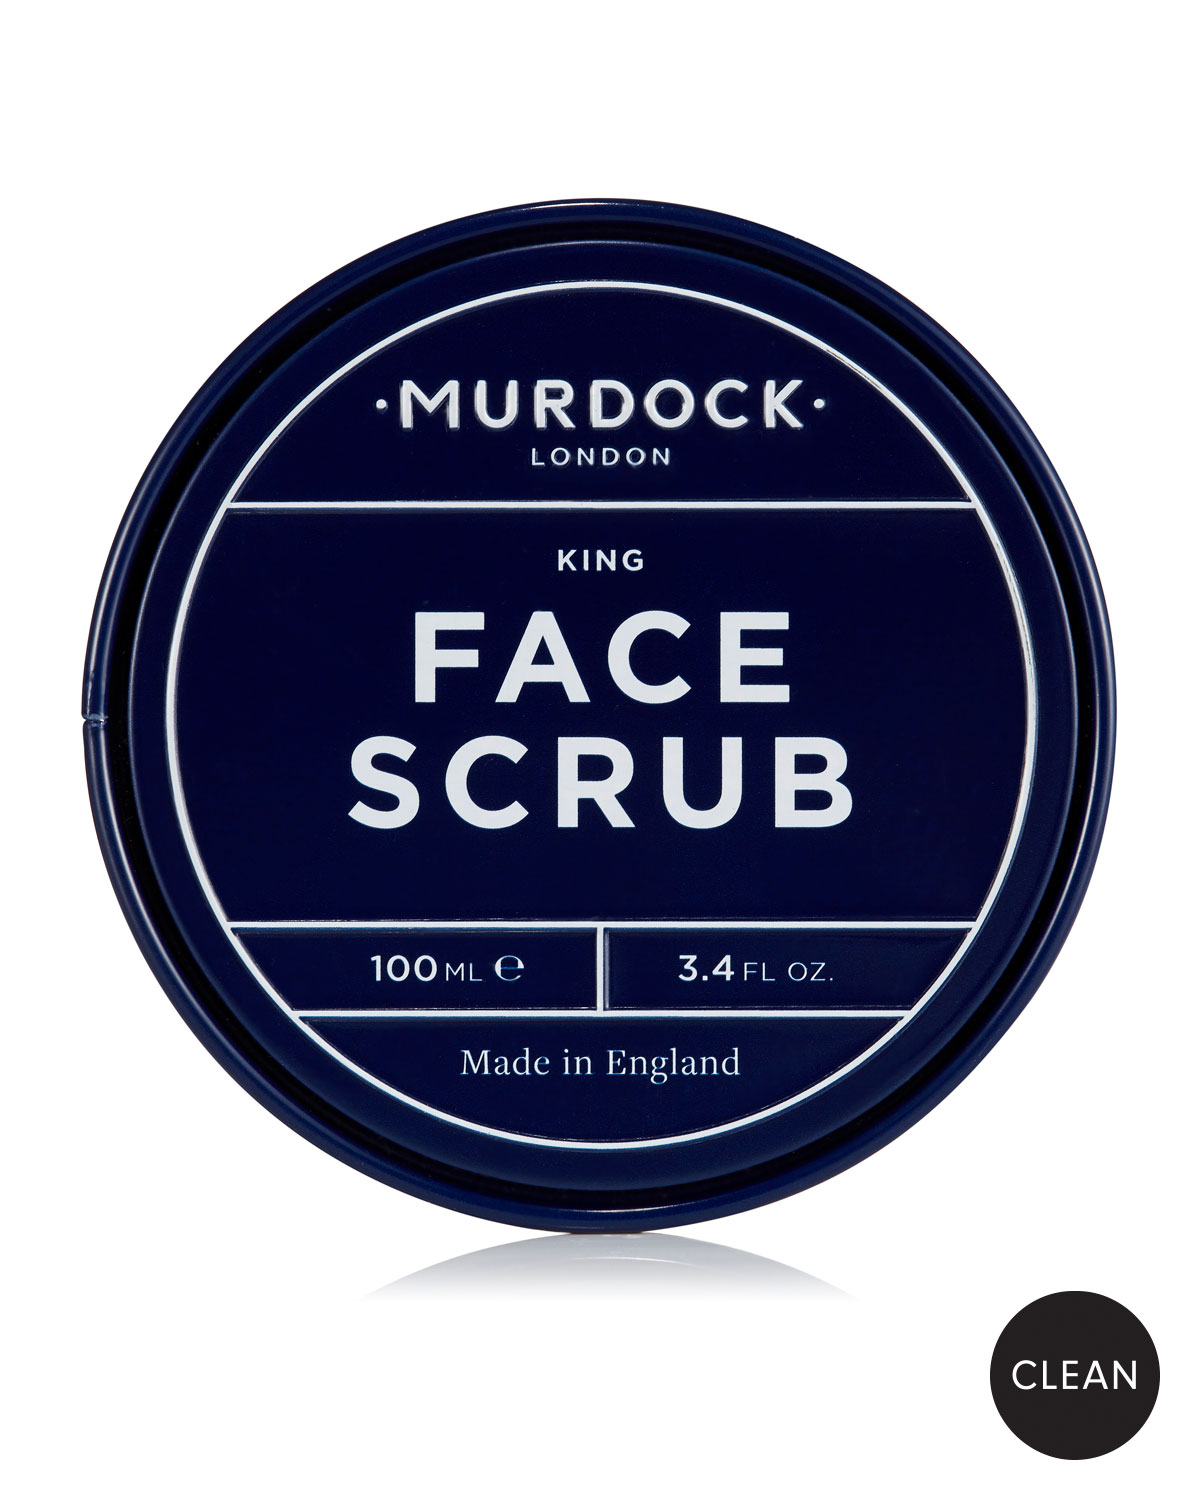 Murdock London Face Scrub, 3.4 oz./ 100 mL